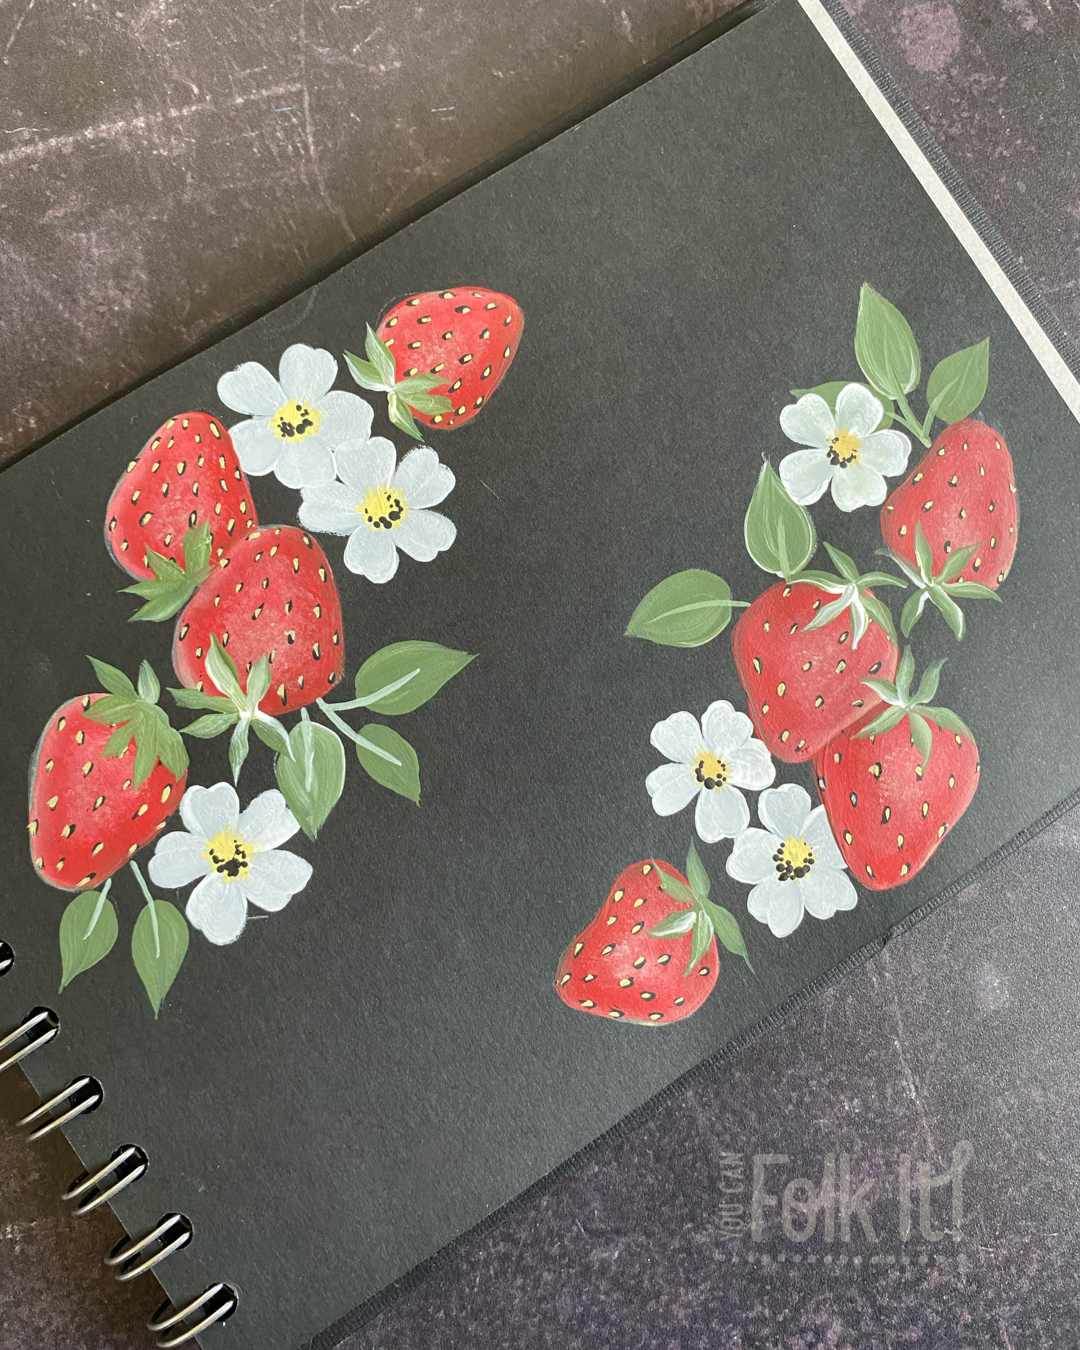 Strawberry and blossom painting on a black painting journal